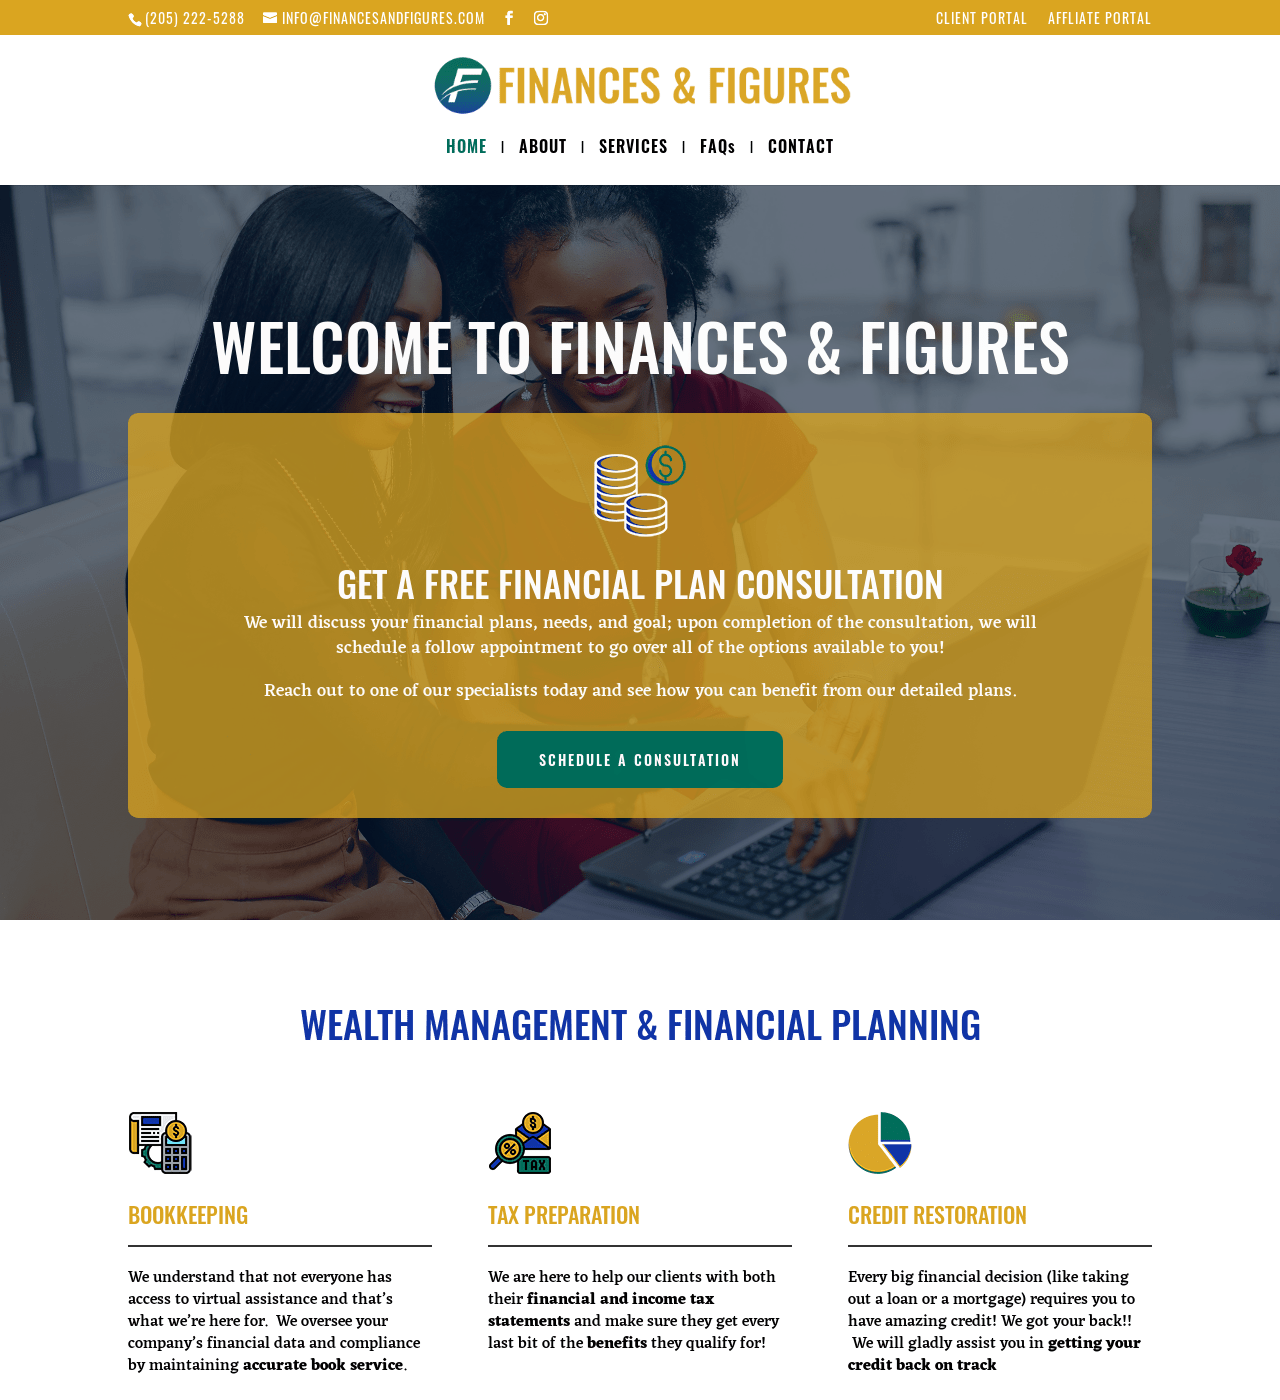 Birmingham-Web-Design-Agency-C-Kinion-Design - Finances and Figures